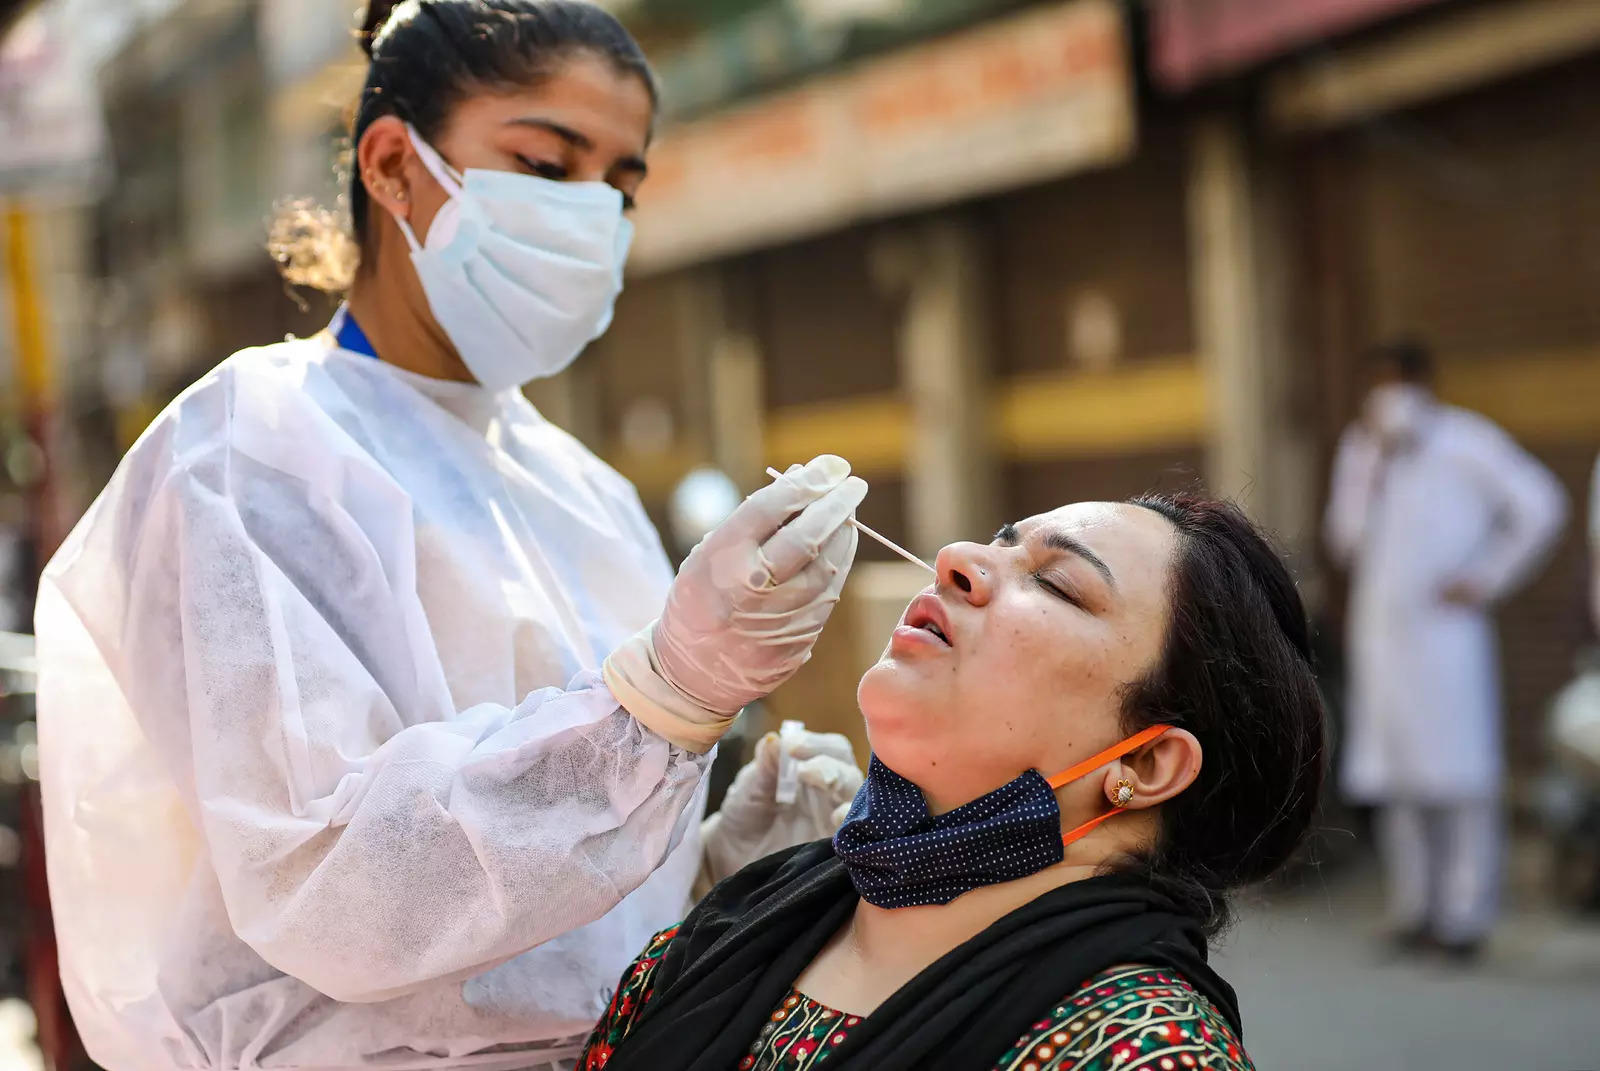 Record 20 lakh coronavirus tests done in India in one day: Health Ministry